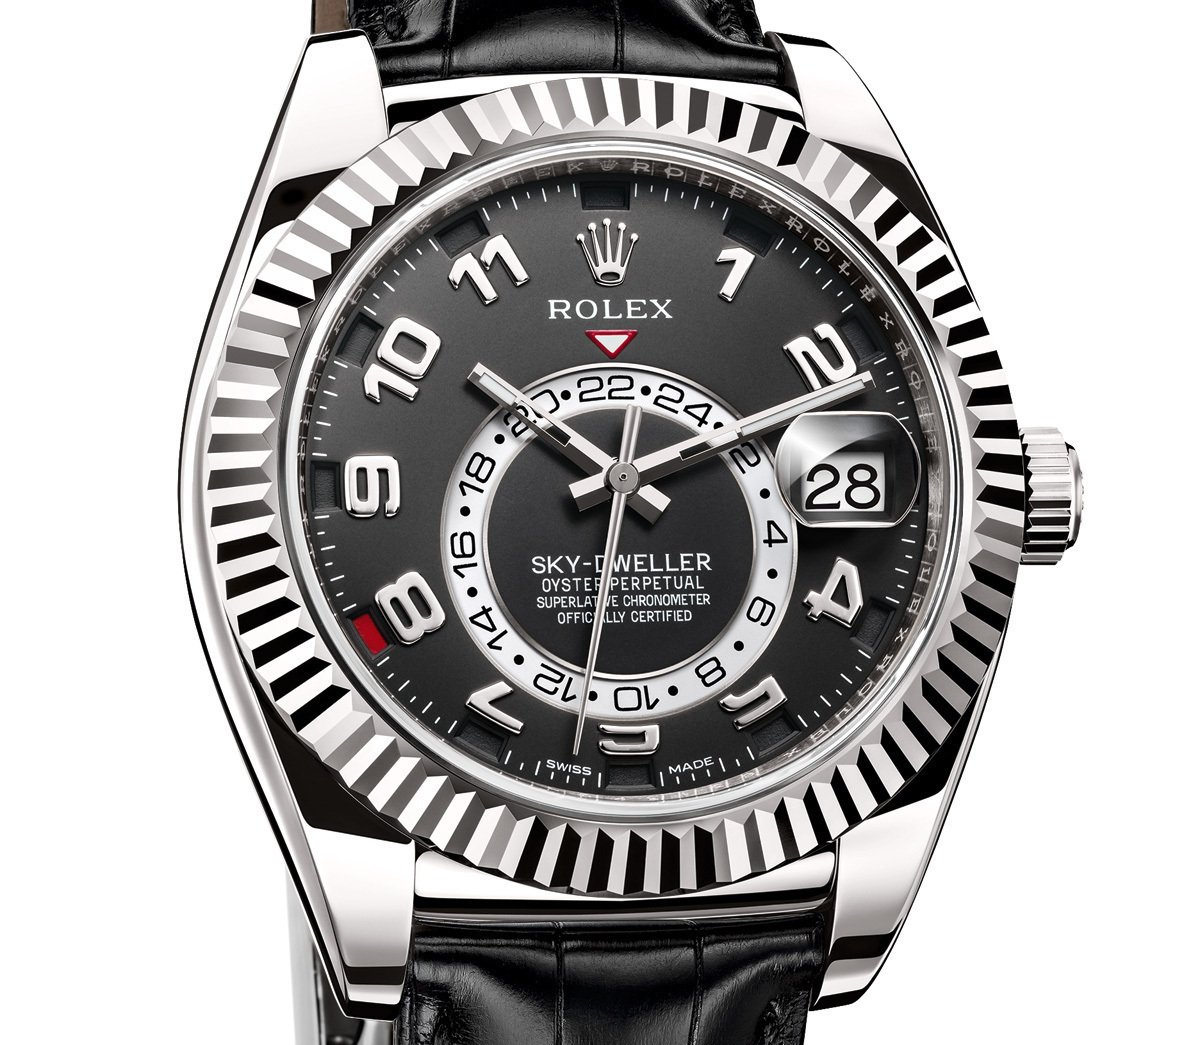 Rolex Sky-Dweller White Gold Black dial.jpg